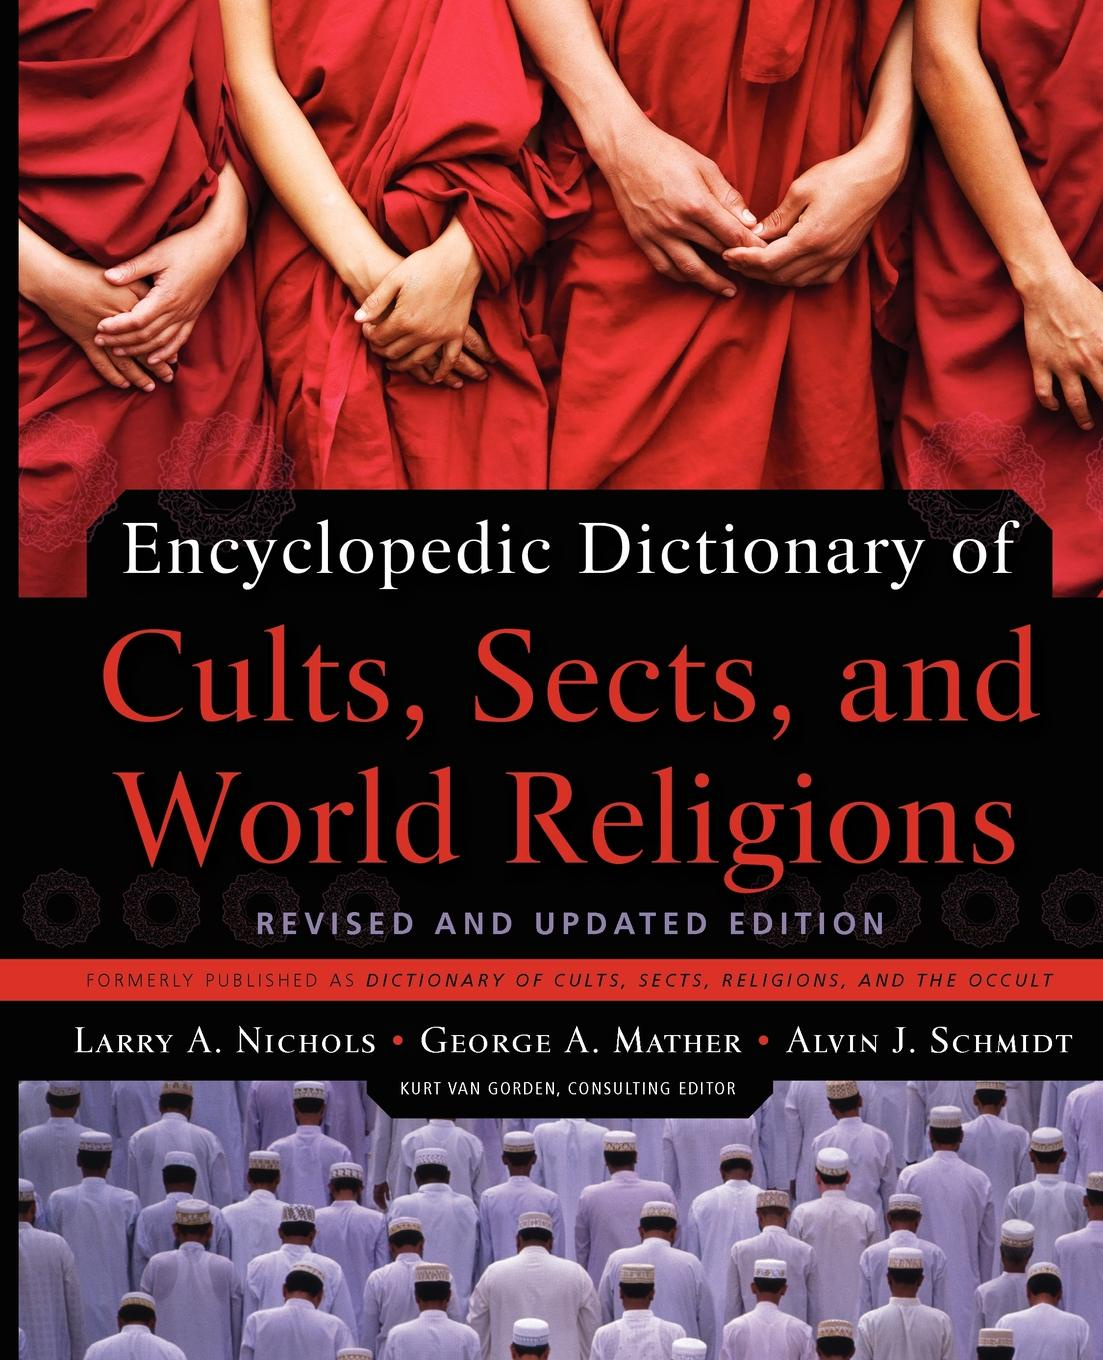 Larry A. Nichols, George A. Mather, Alvin J. Schmidt Encyclopedic Dictionary of Cults, Sects, and World Religions larry a nichols george a mather alvin j schmidt encyclopedic dictionary of cults sects and world religions